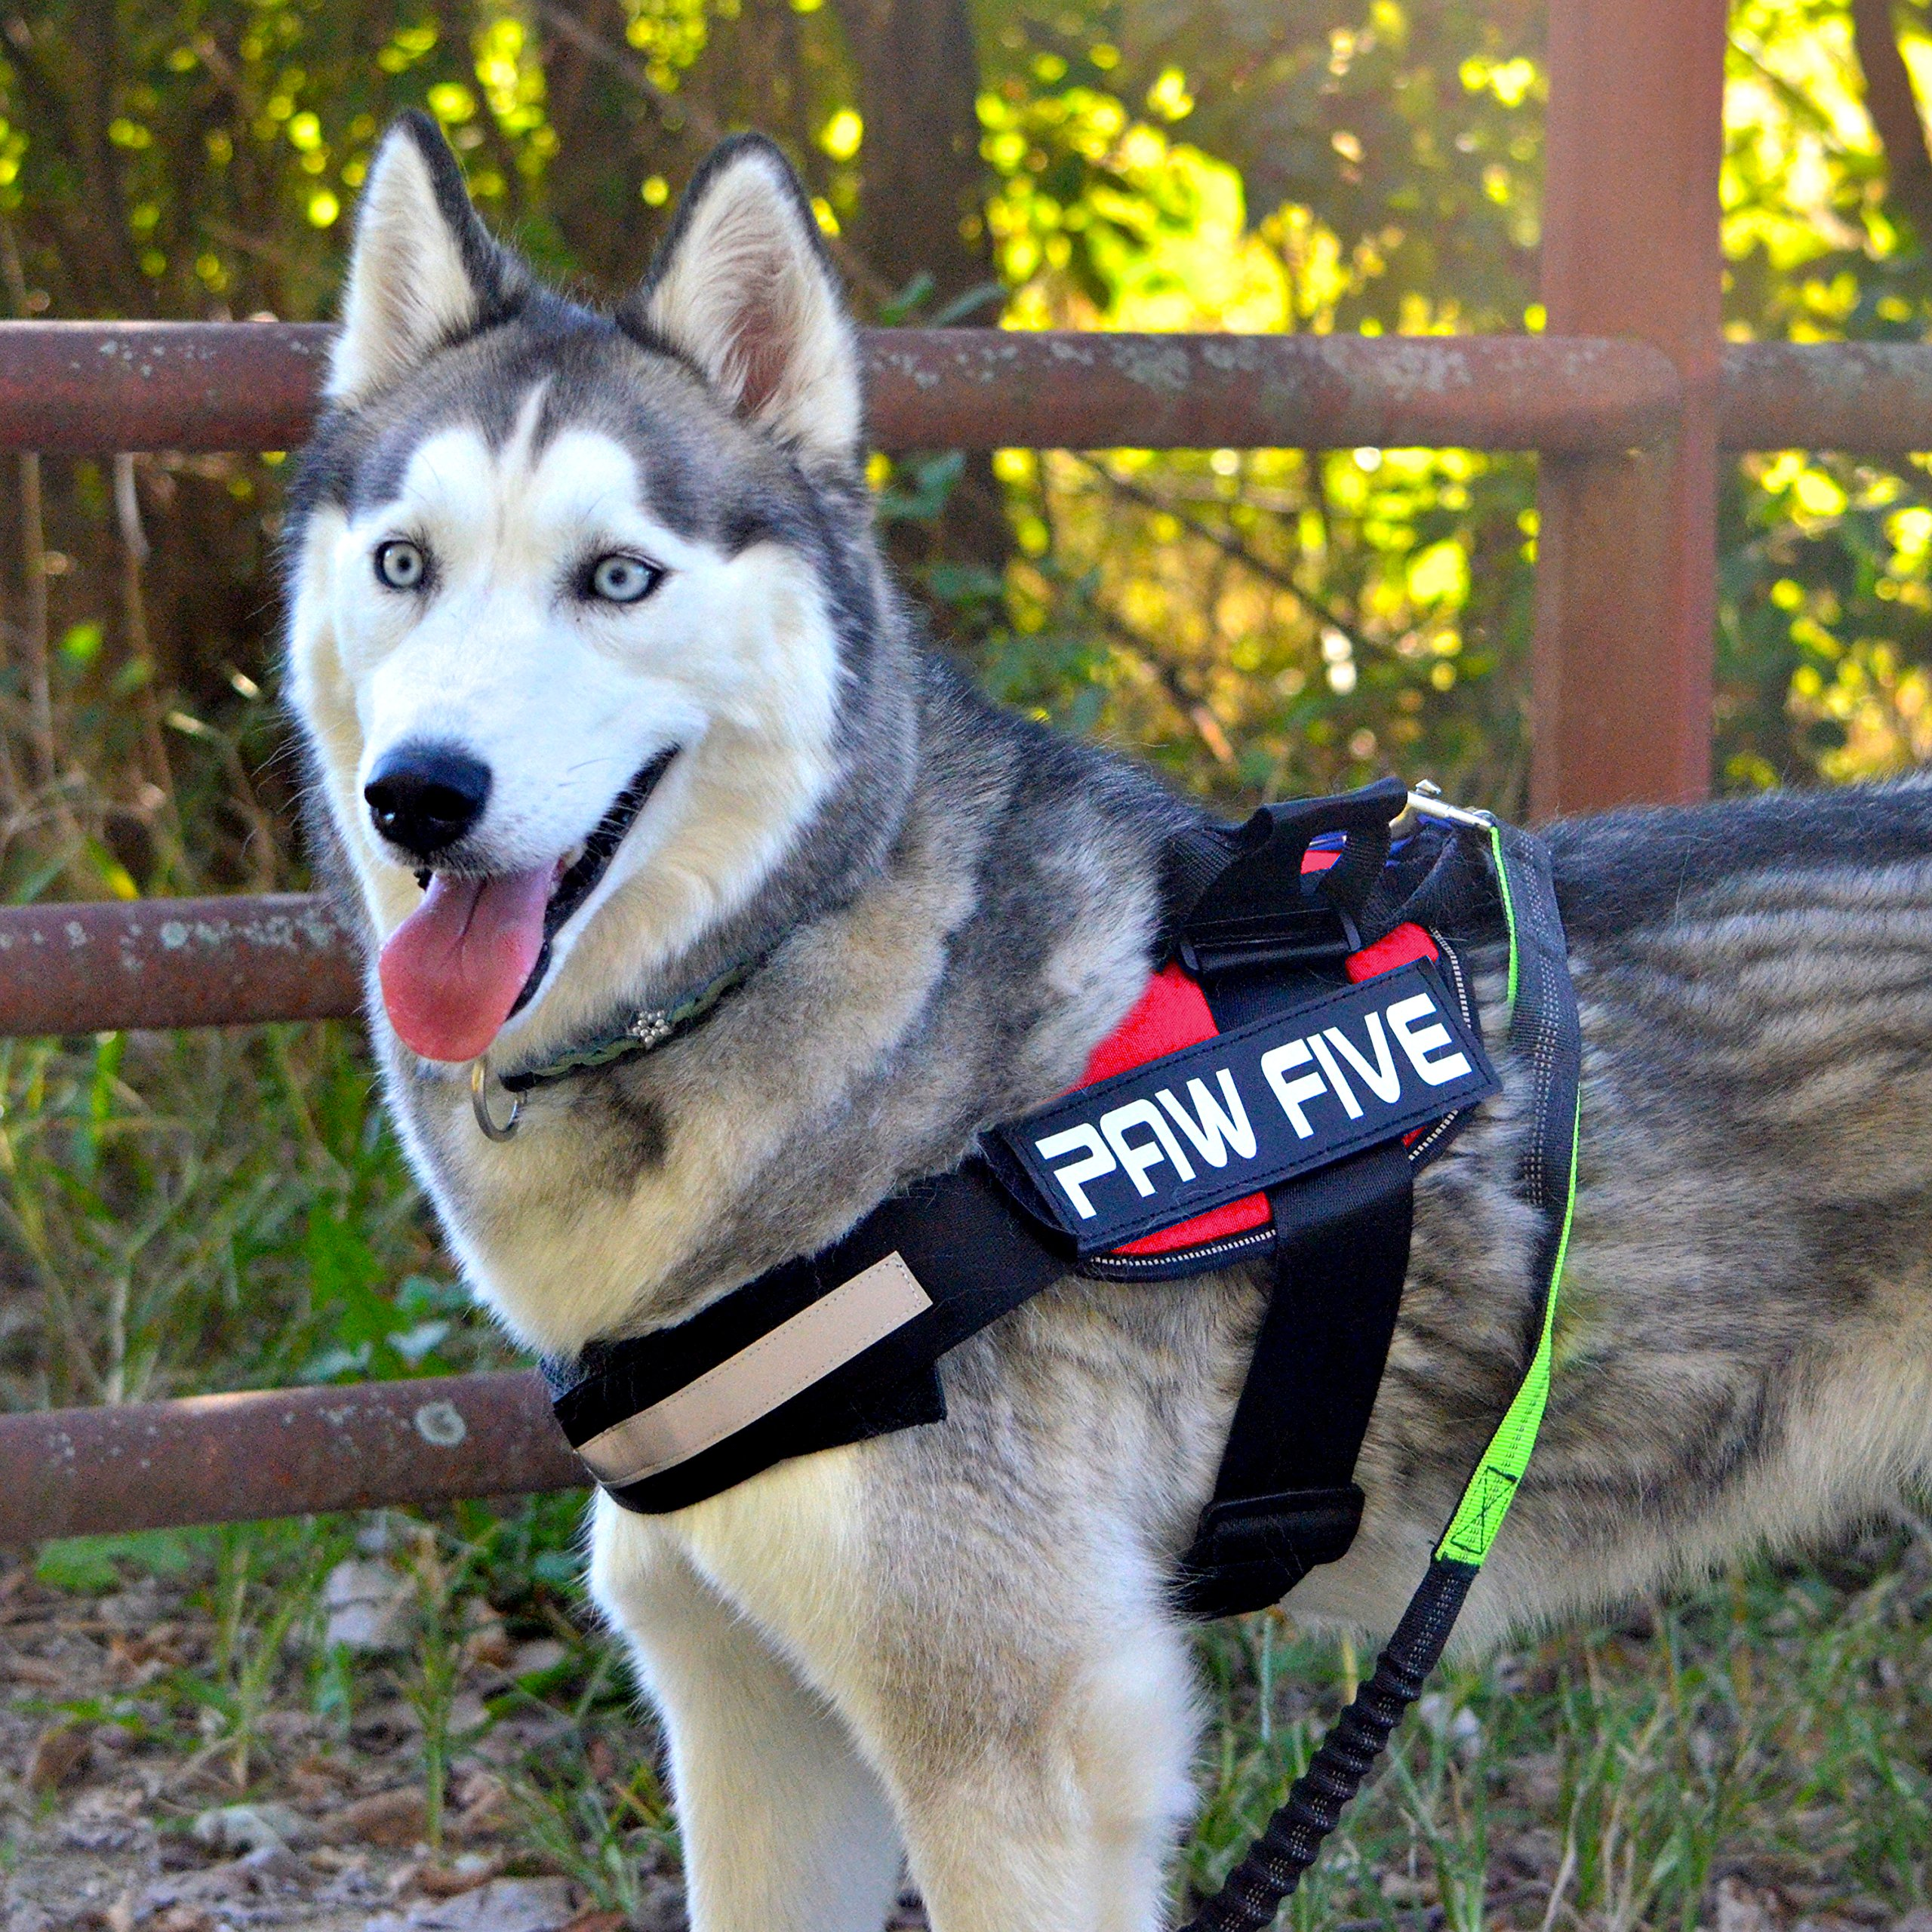 Paw Five CORE-1 Reflective Dog Harness with Built-in Waste Bag Dispenser Adjustable Padded No-Pull Easy Walk Control for Medium and Large Dogs, Check Sizing Chart Before Ordering (Medium, Lava Red) by Paw Five (Image #1)